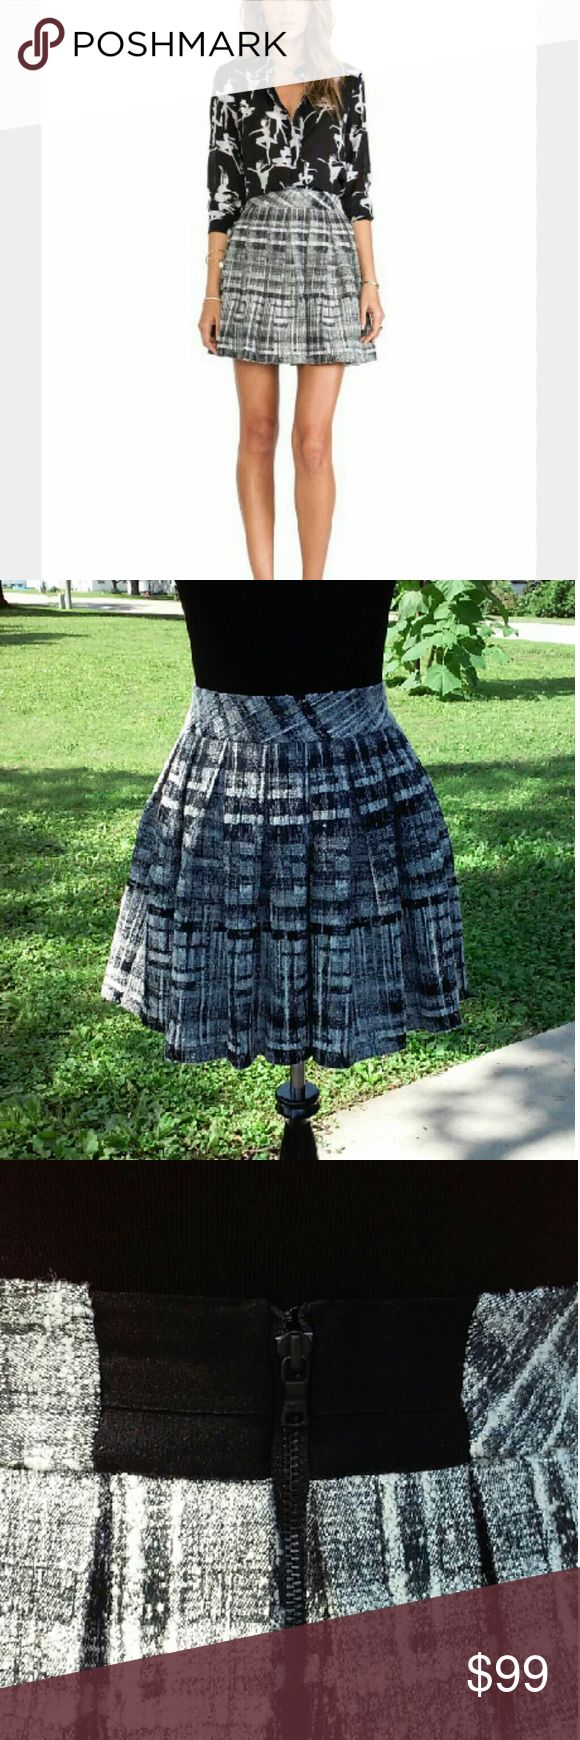 One Day⚡Alice + Olivia kayla box pleat skirt NWT Alice + Oliva kayla box pleat skirt. This is a black and white wool blend, nubby tweed skirt with a back zip. Alice + Olivia Skirts